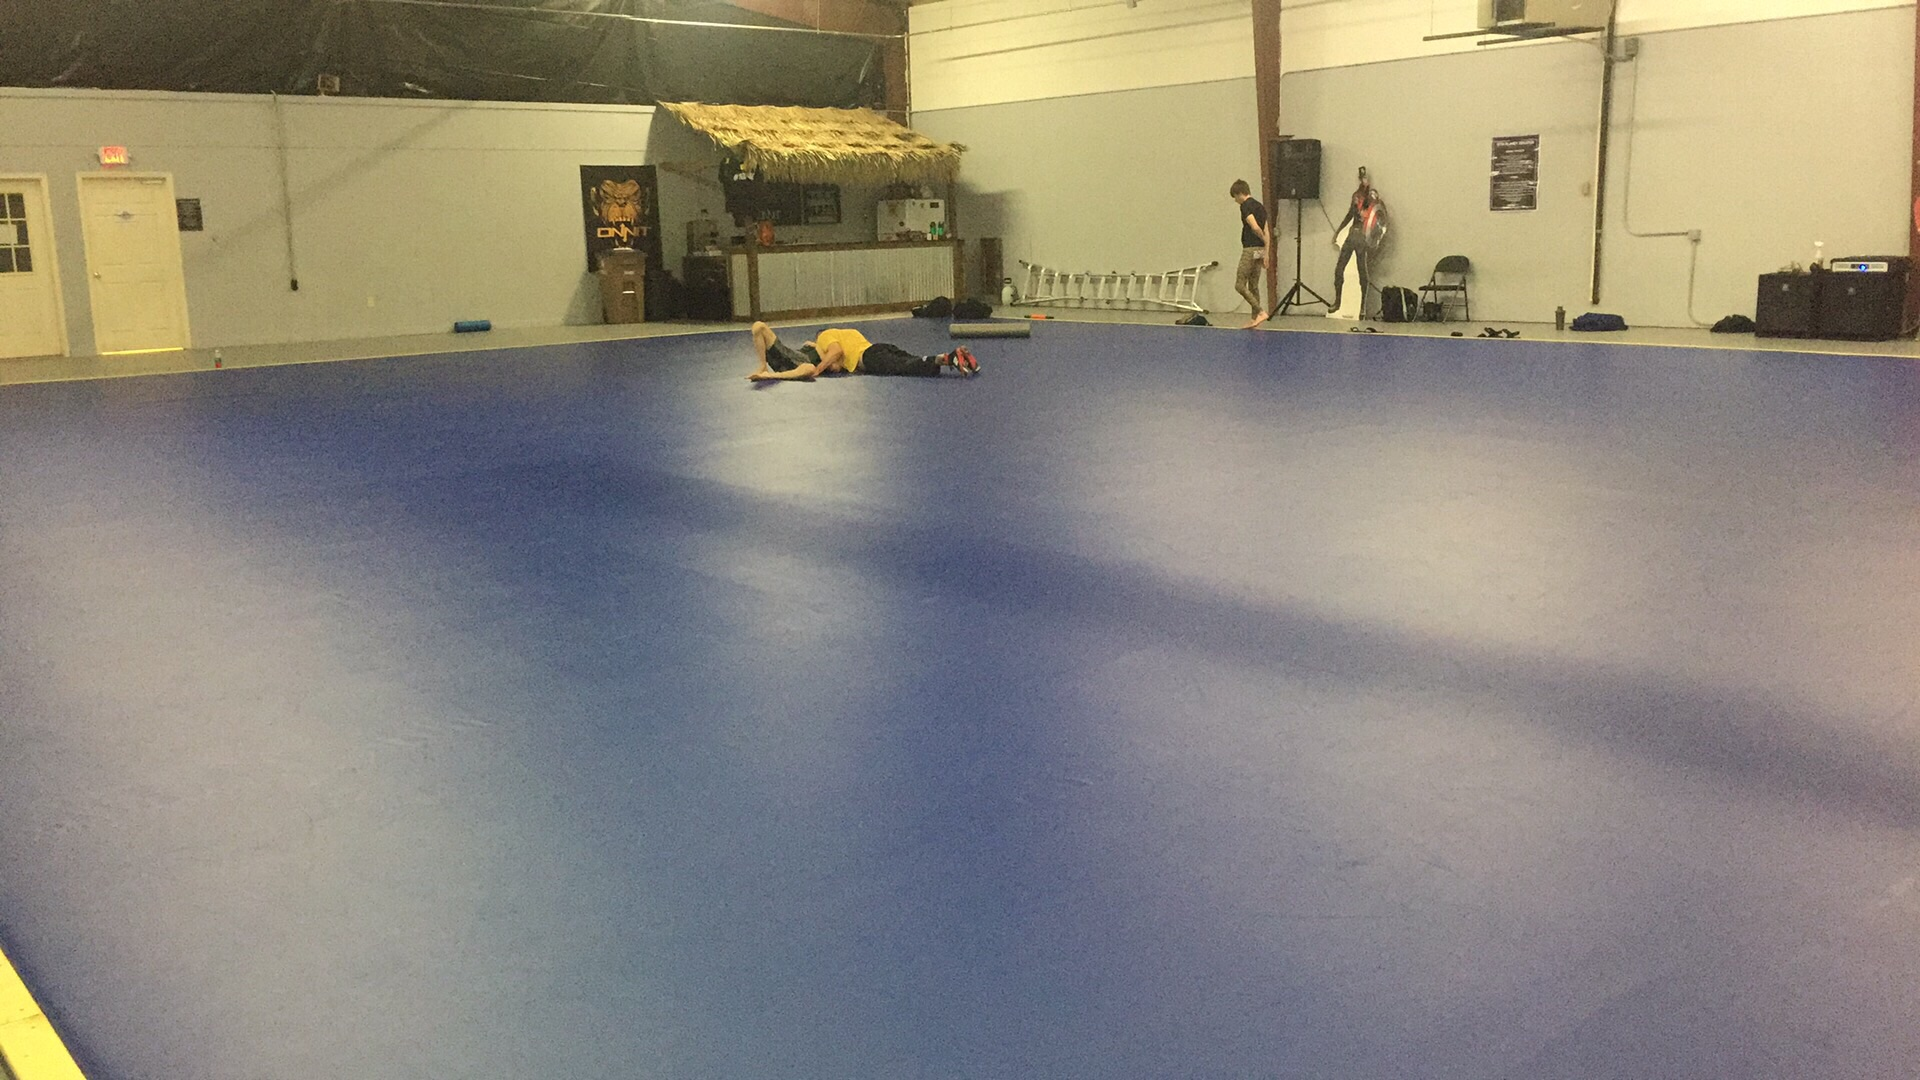 Incredible mat space.